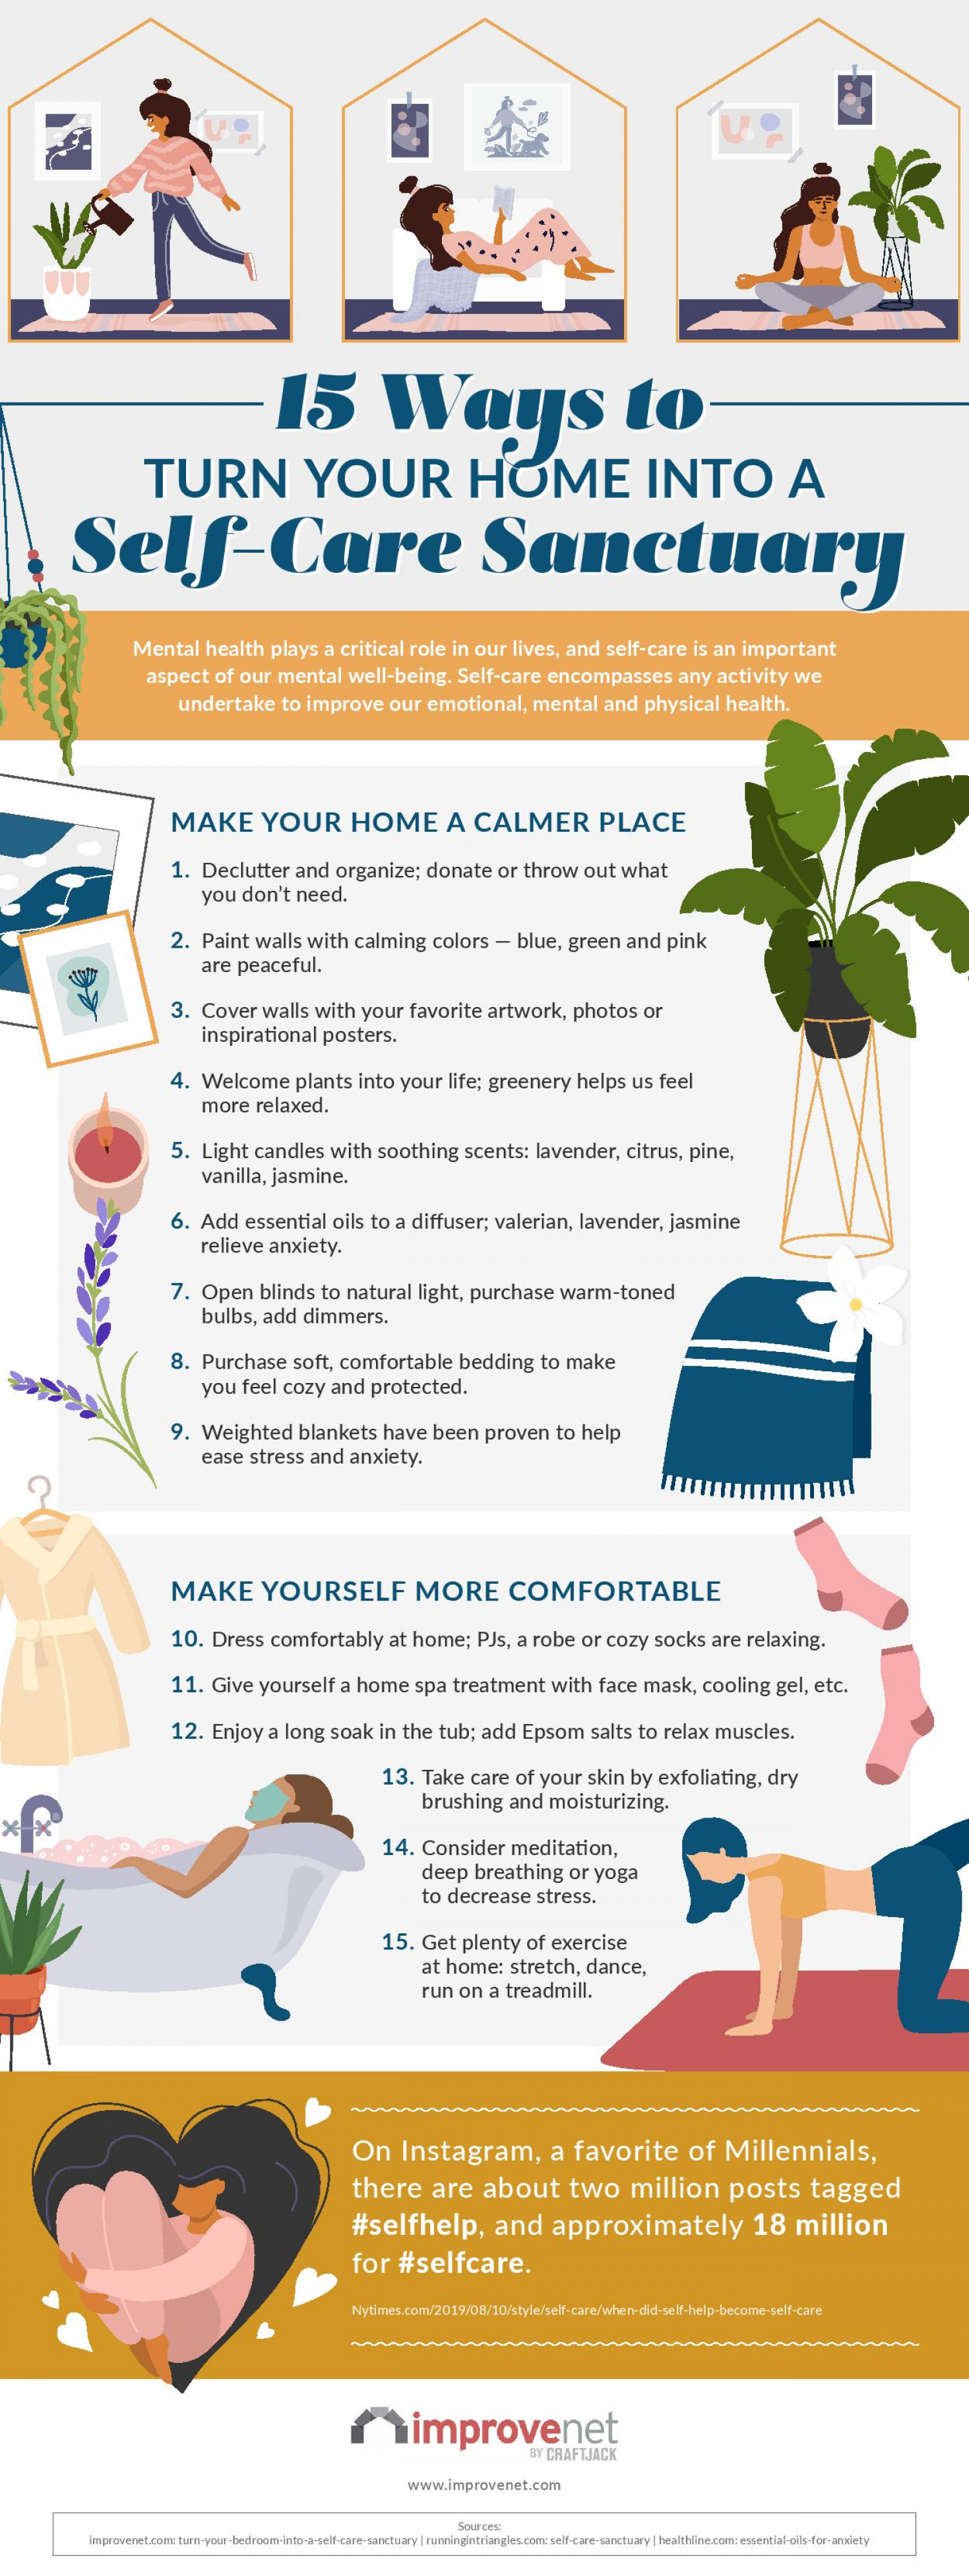 15 Ways To Turn Your Home Into A Self-Care Sanctuary Infographic